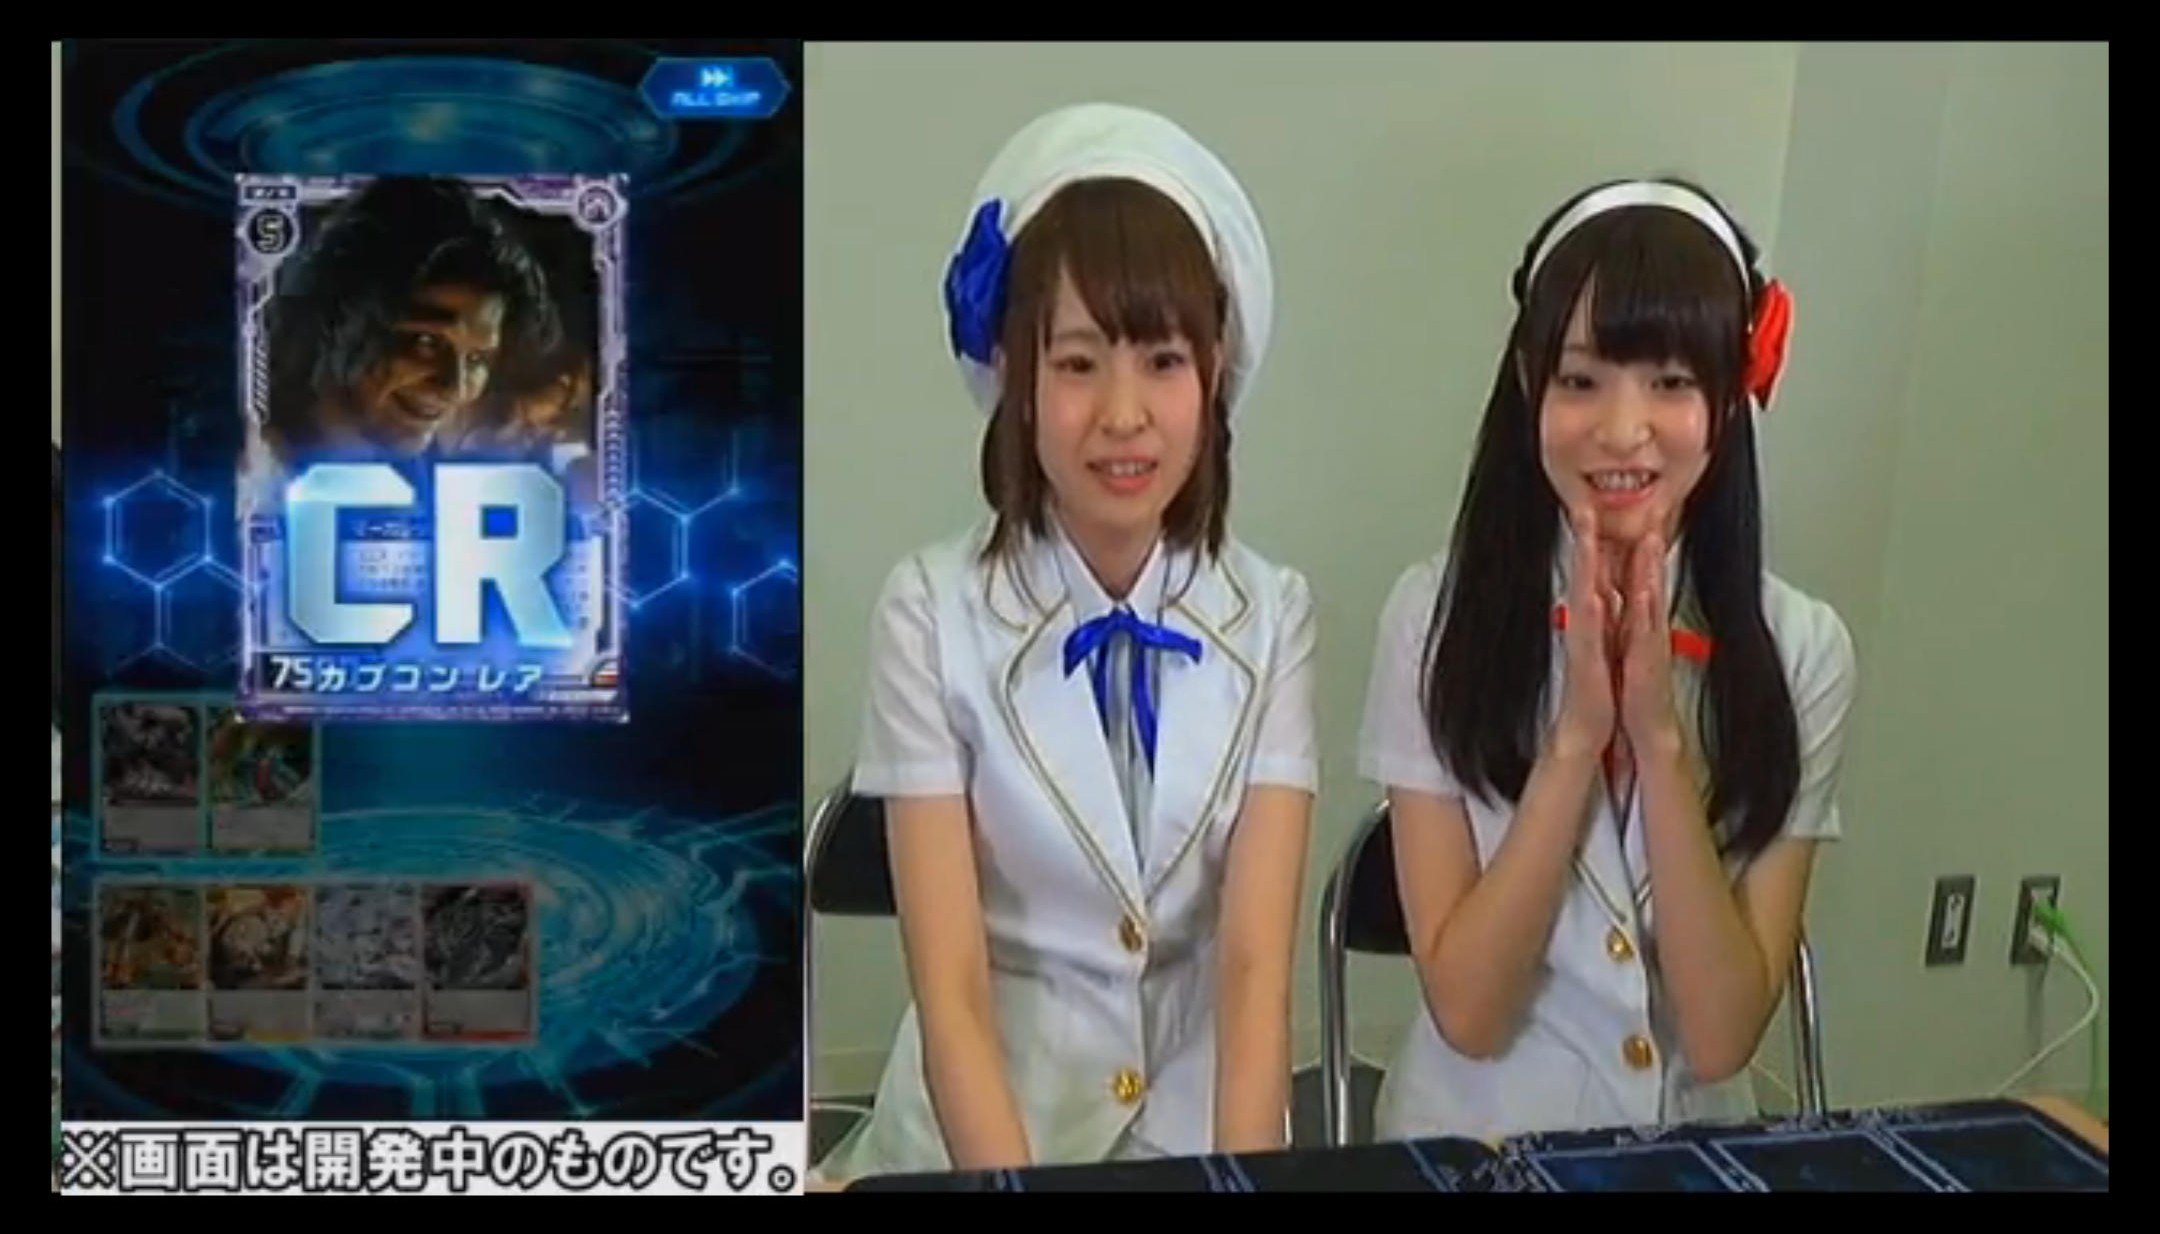 zx-ignition-broadcast-170712-048.jpg